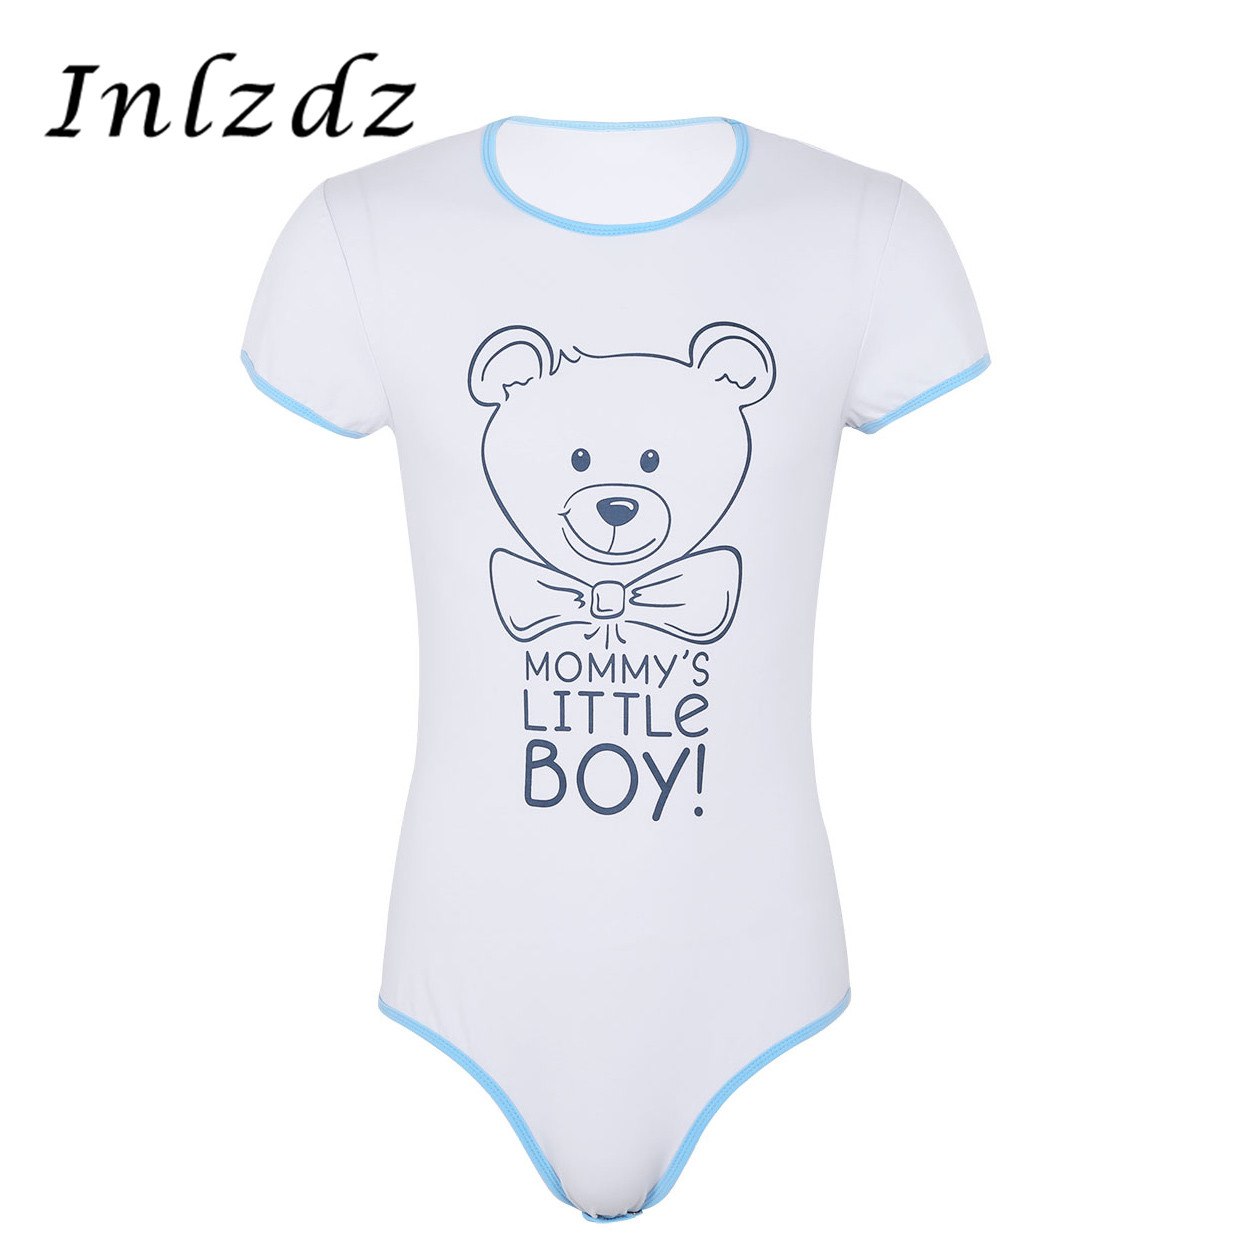 Mens <font><b>Lingerie</b></font> Bodysuit Romper Pajamas Round Neck Short Sleeves Press Button Crotch Front Printed <font><b>Adult</b></font> Baby Romper <font><b>Sex</b></font> Bodysuit image